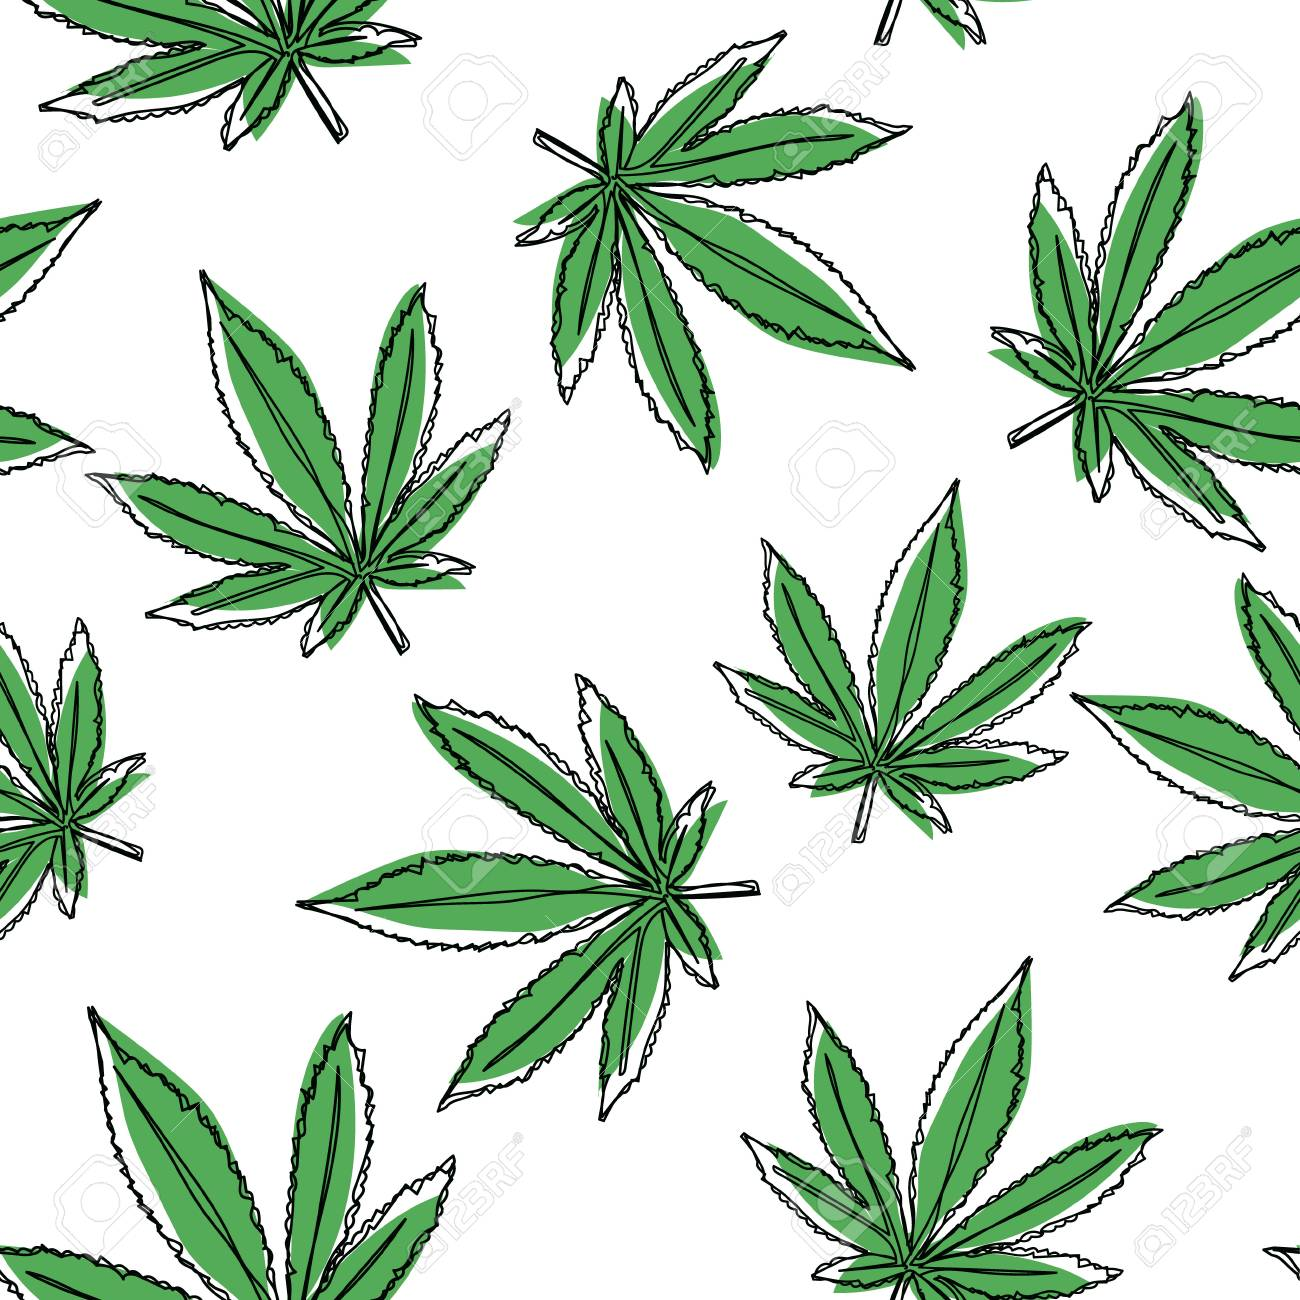 Vector Marijuana Leaves Seamless Pattern Vector Cannabis Background Royalty Free Cliparts Vectors And Stock Illustration Image 115044229